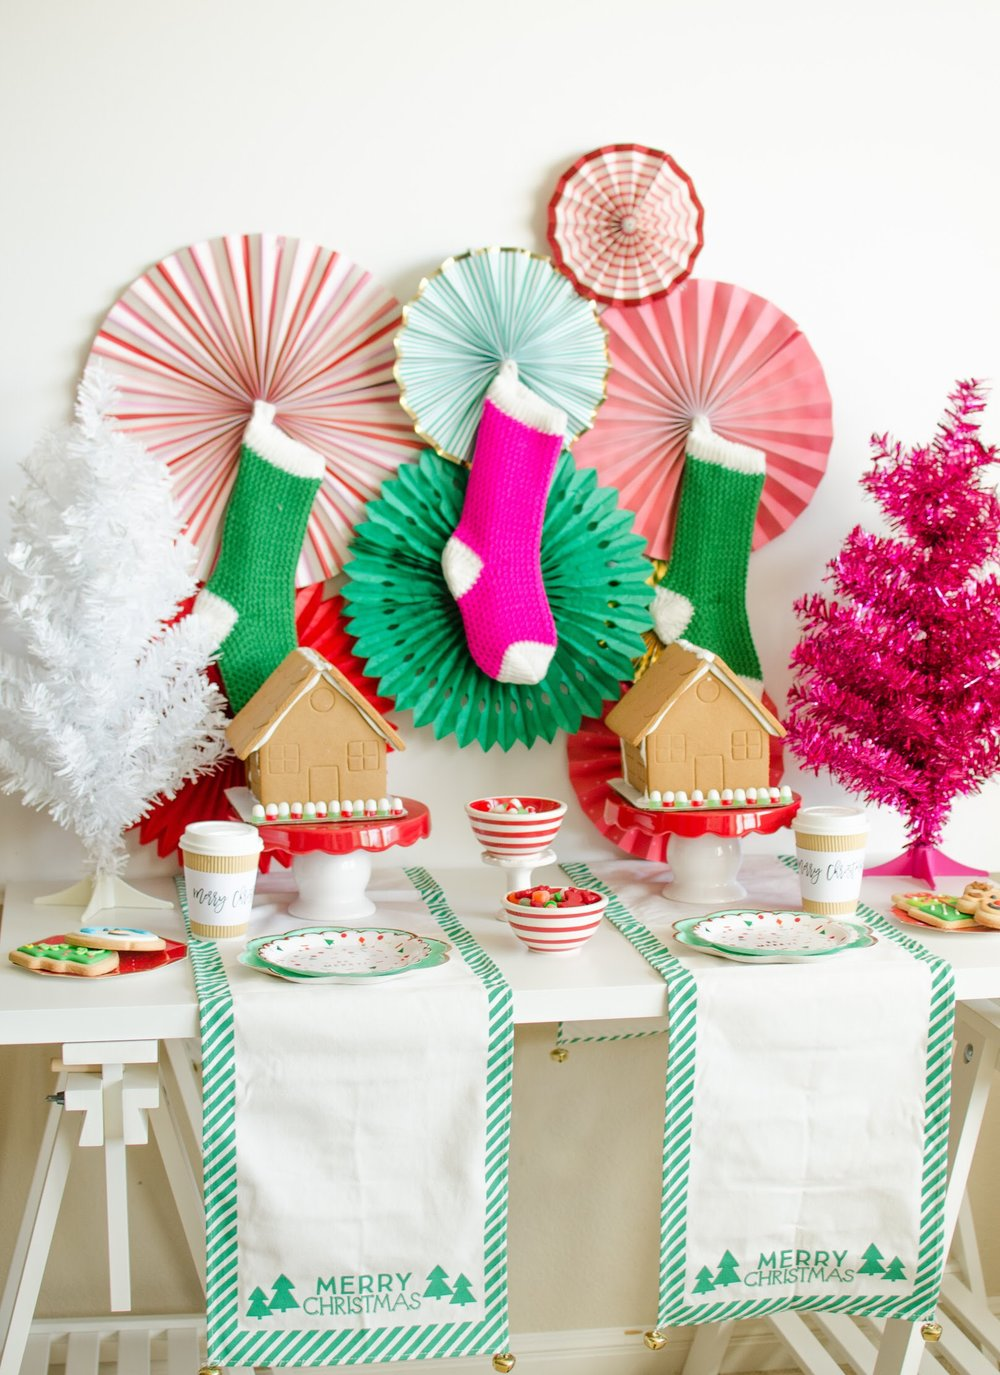 Click for the best party planning tips to style your very own Gingerbread House Decorating Party for Kids by Mint Event Design www.minteventdesign.com #gingerbreadhouse #holidayparty #holidays #partyideas #christmasparty #holidaypartyideas #kidsparty